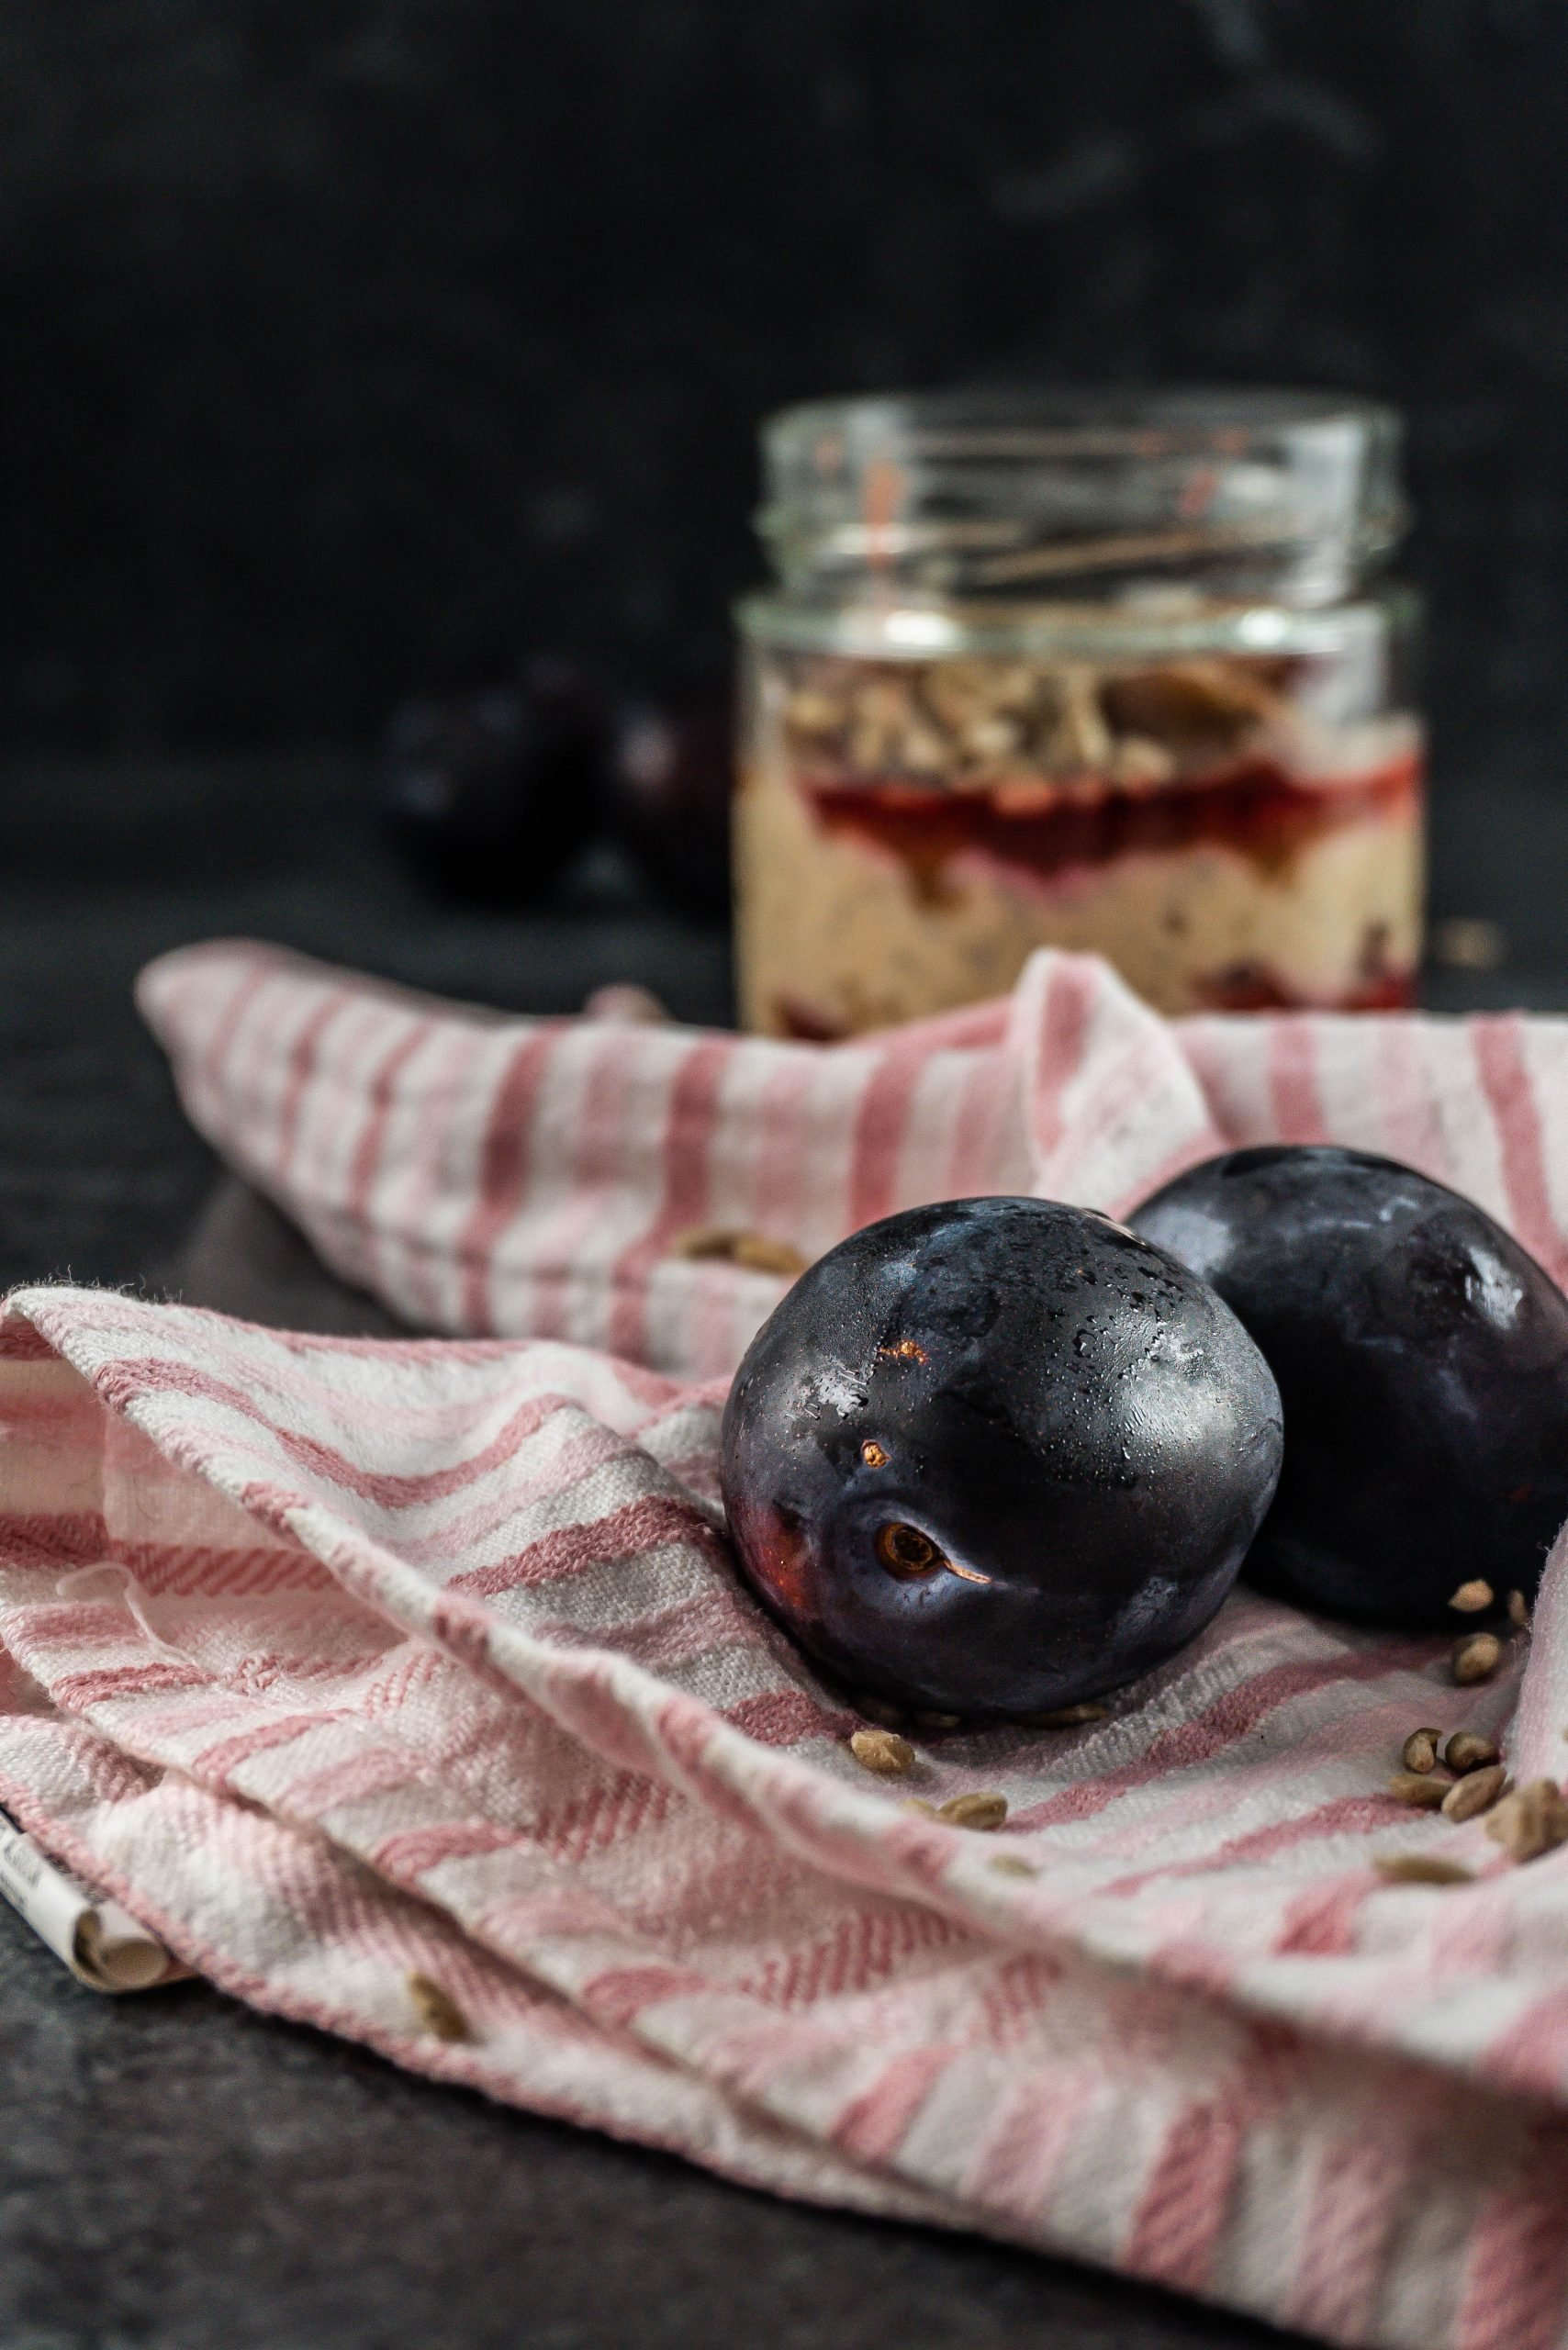 Plums in a pink striped tea towel with Spiced Overnight Oats in a glass jar in the background